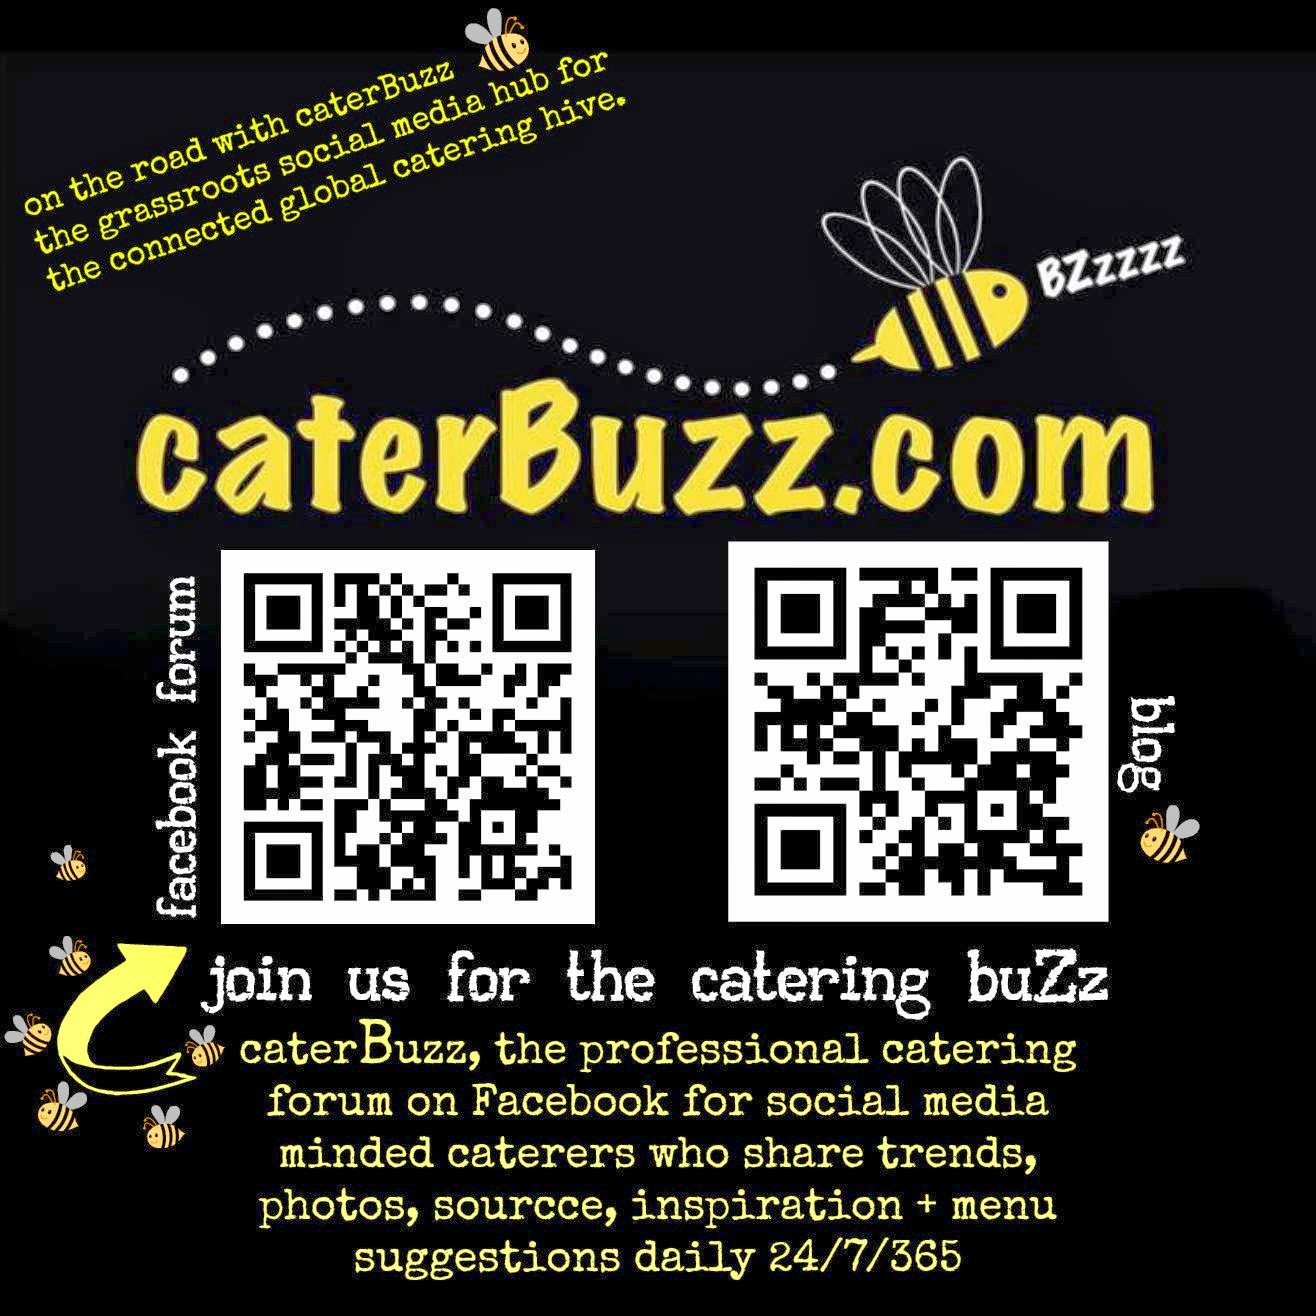 on the road with caterBuzz  - the grassroots social media hub for catering professionals